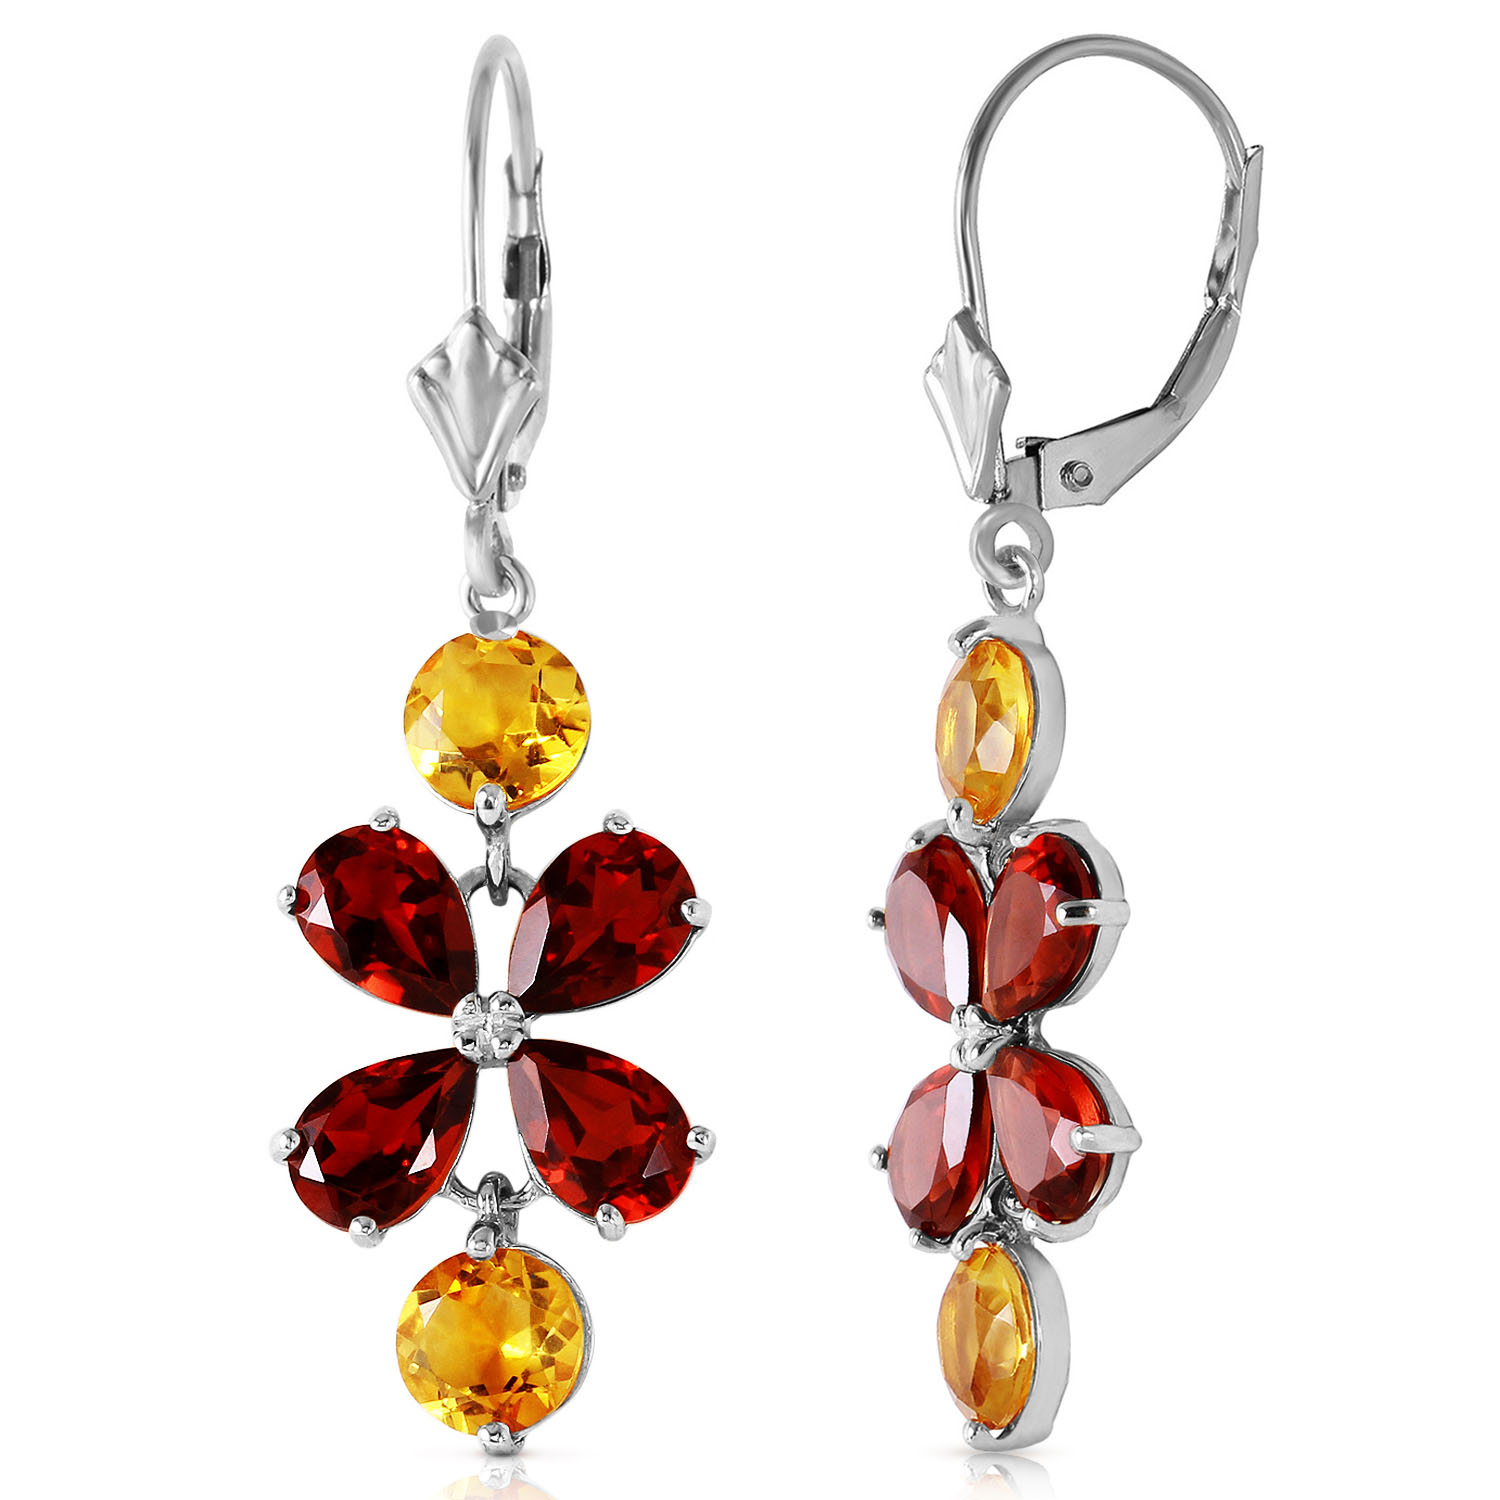 532 ctw 14k solid white gold chandelier earrings citrine garnet ebay image is loading 5 32 ctw 14k solid white gold chandelier mozeypictures Gallery